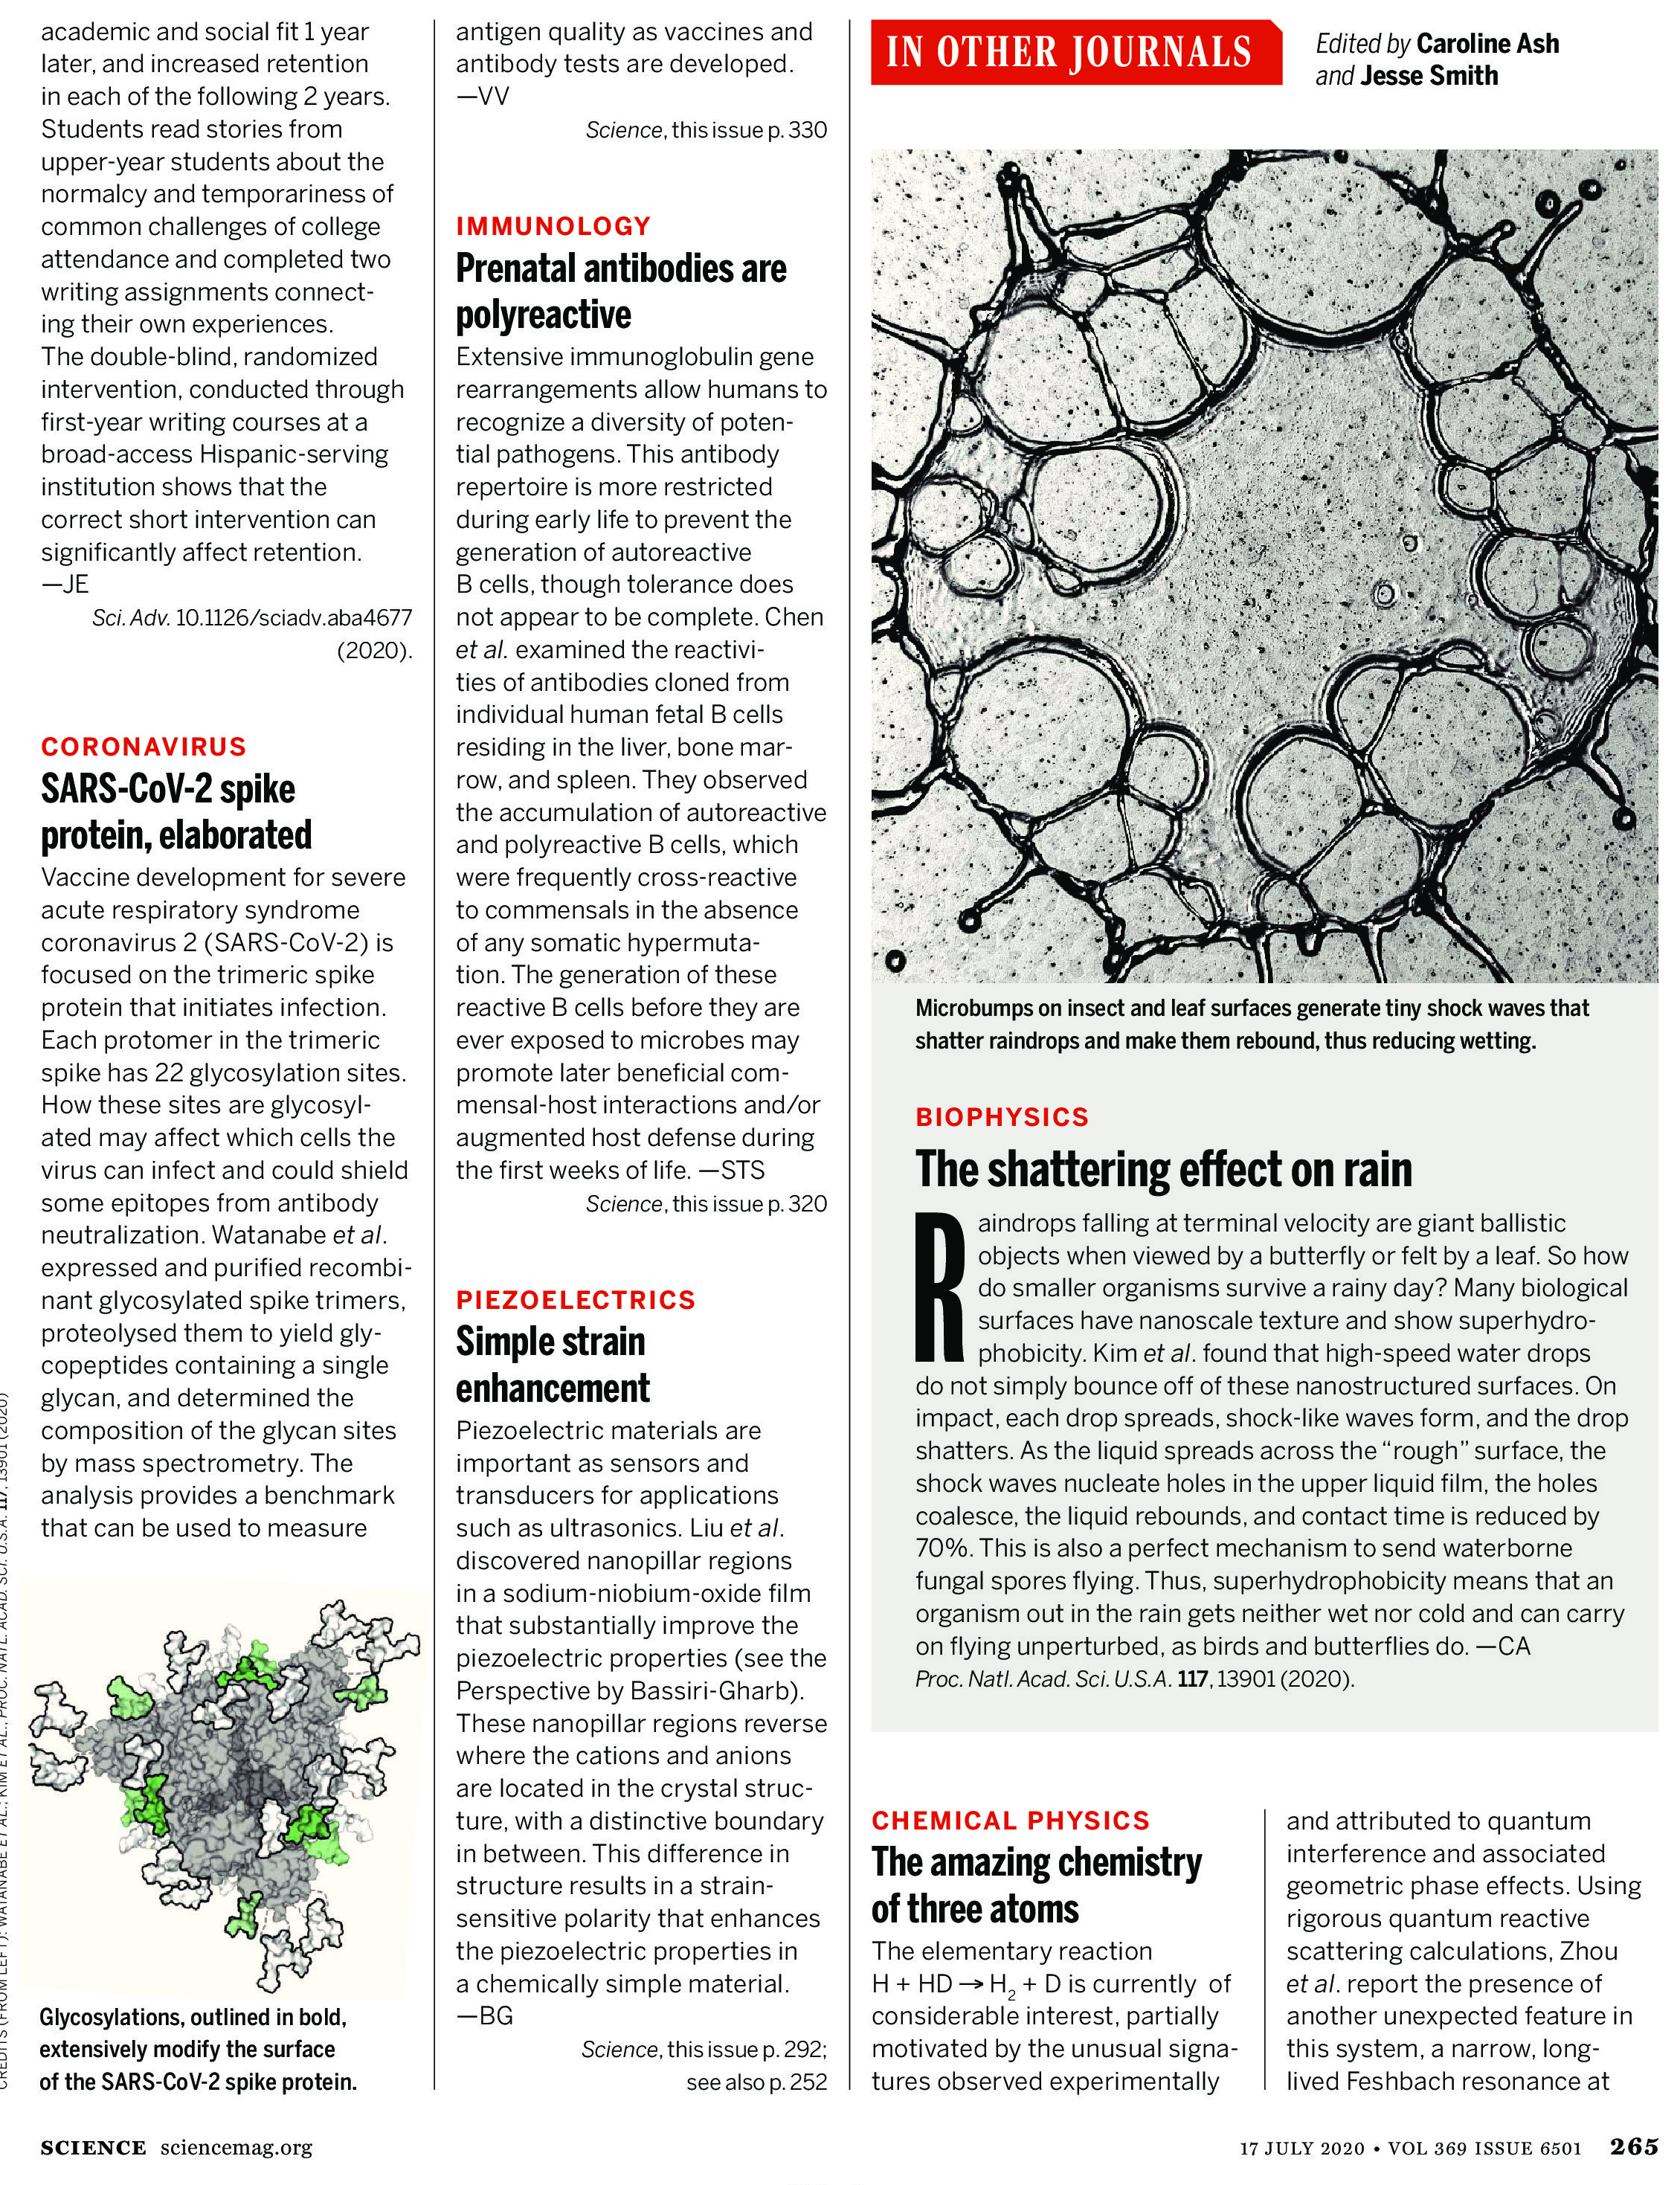 Science Magazine Research Highlights July 17 2020